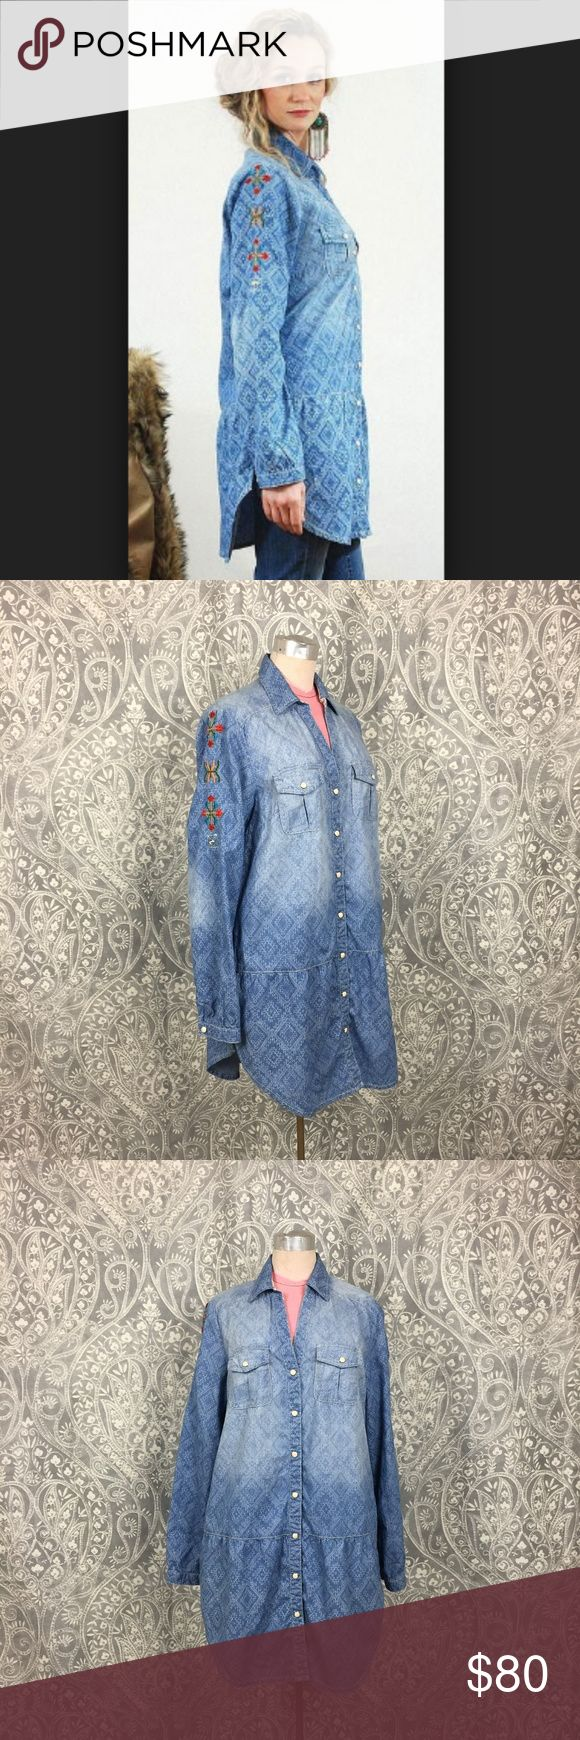 Tasha Polizzi Little Bronco Denim Tunic Dress New without tags Tasha Polizzi wester chambray tunic dress, featuring beautiful wester print on the blue denim base and colorful embroidery down the sleeves. No signs of damage or wear. Perfect for wearing with leggings and your favorite pair of boots.   Laying Flat Measurements are:  Chest- 21 in Waist- 19.5 in Hips- 23 in Overall Length- 34 in Tasha Polizzi Tops Tunics